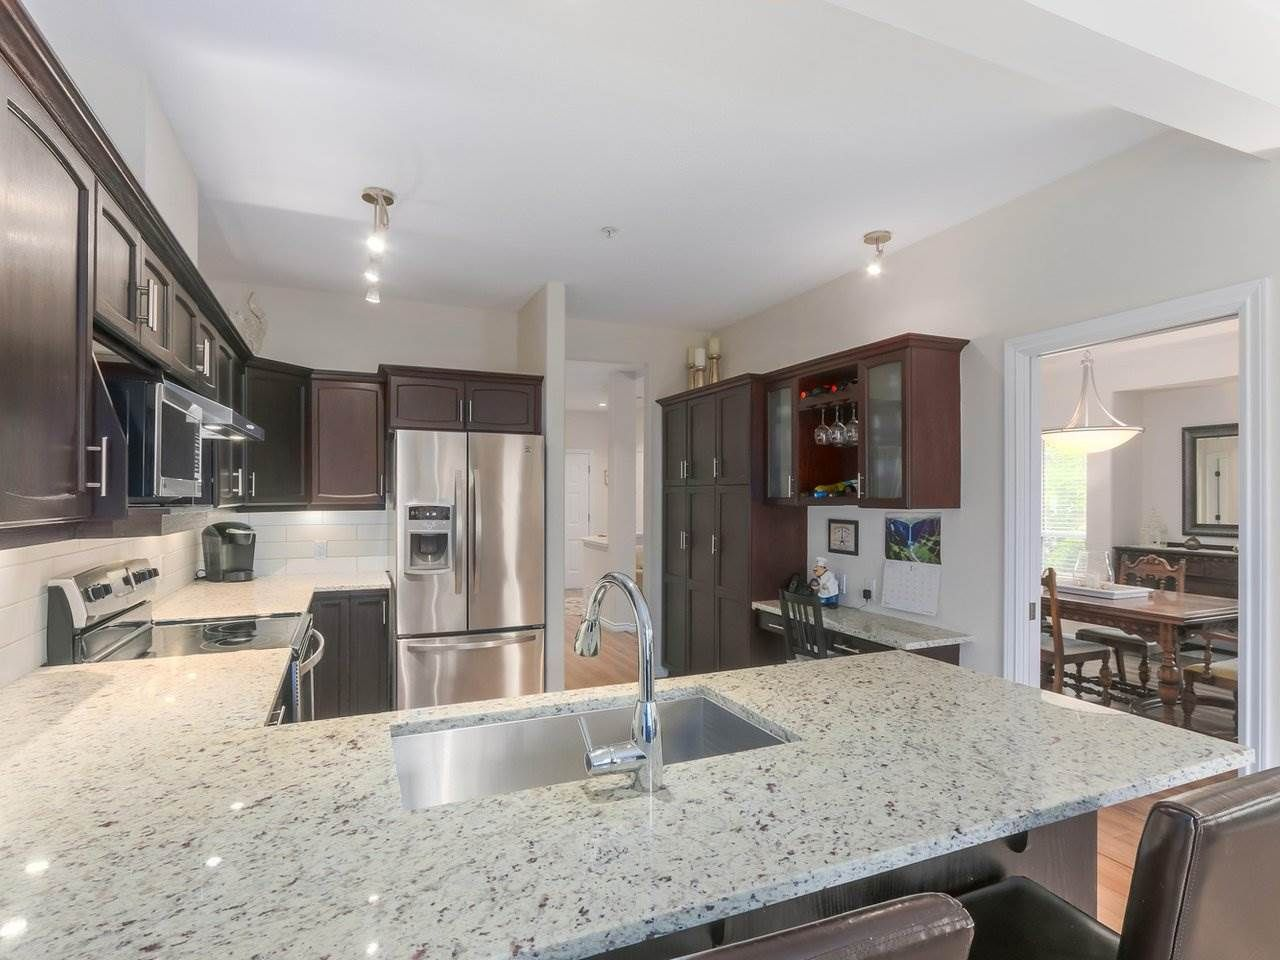 """Photo 10: Photos: 21 998 RIVERSIDE Drive in Port Coquitlam: Riverwood Townhouse for sale in """"PARKSIDE PLACE"""" : MLS®# R2371728"""